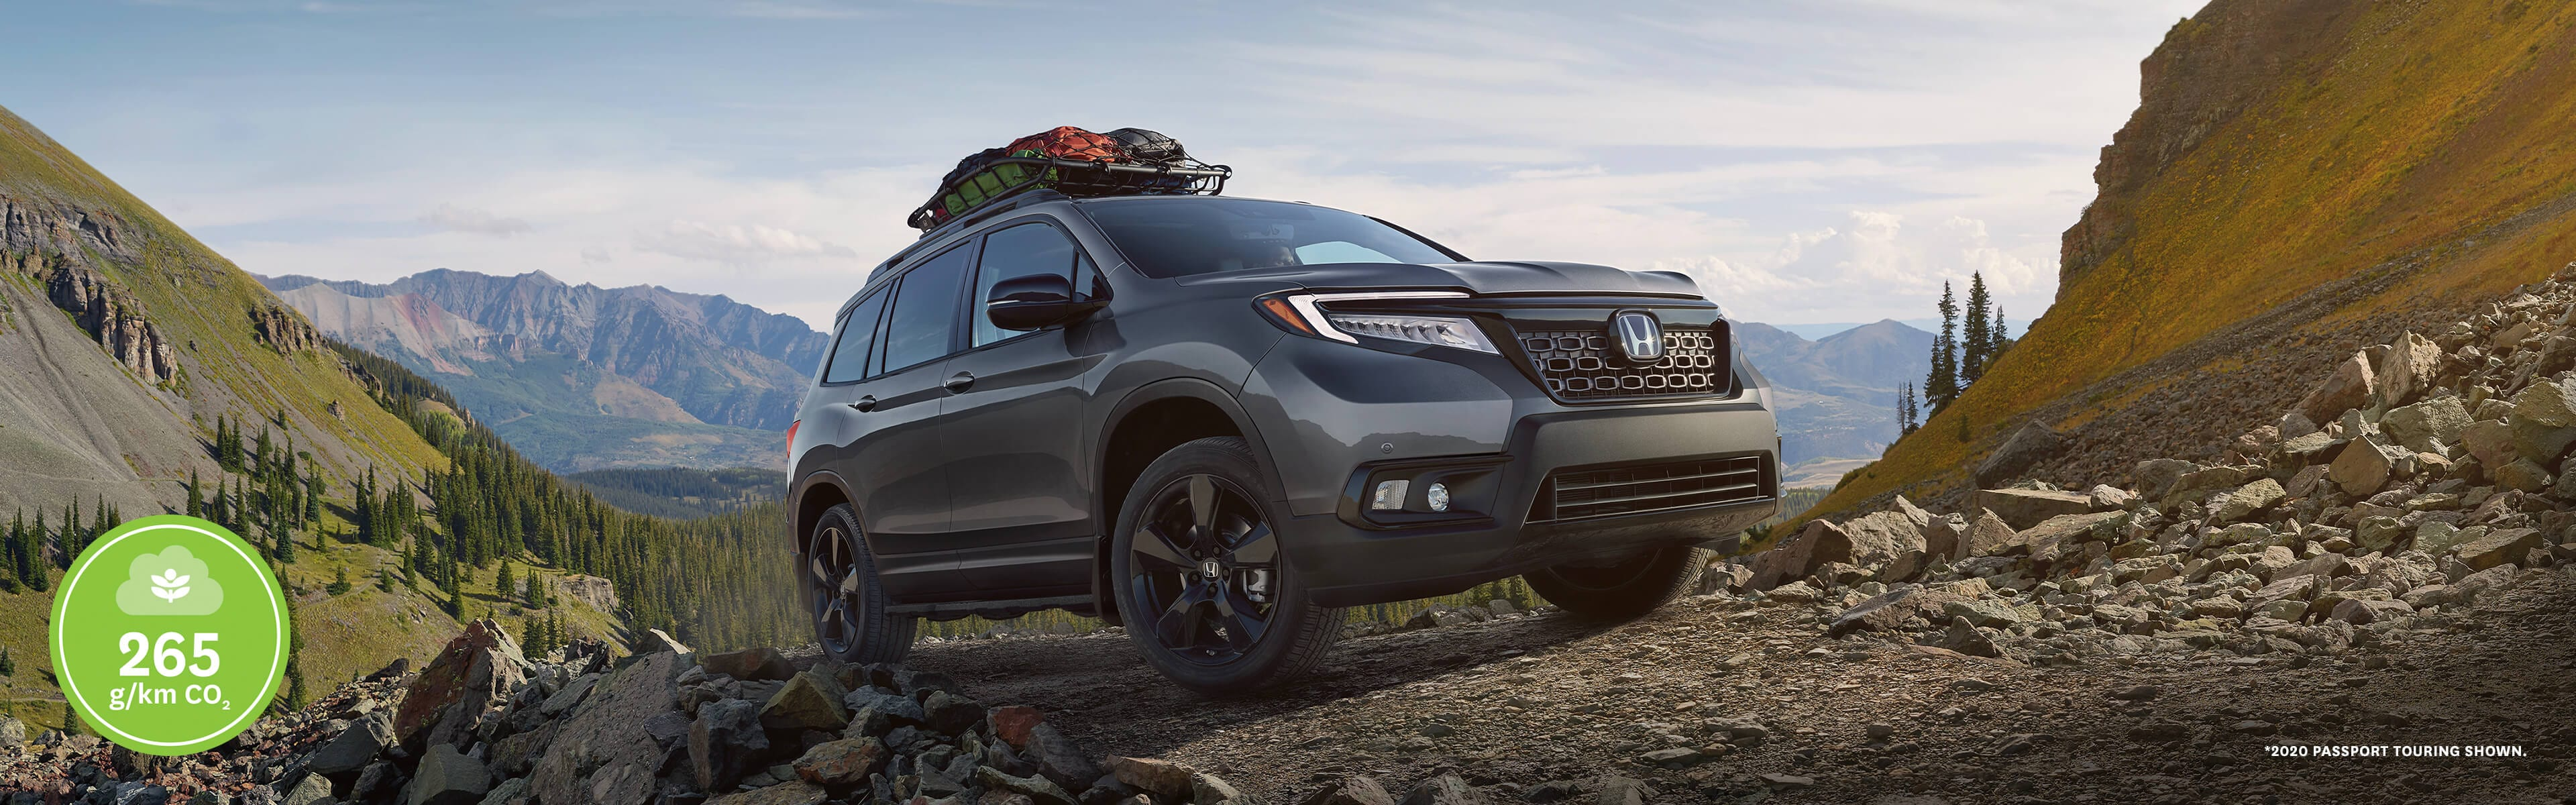 2020 Honda Passport parked in a mountain area by some jagged rocks